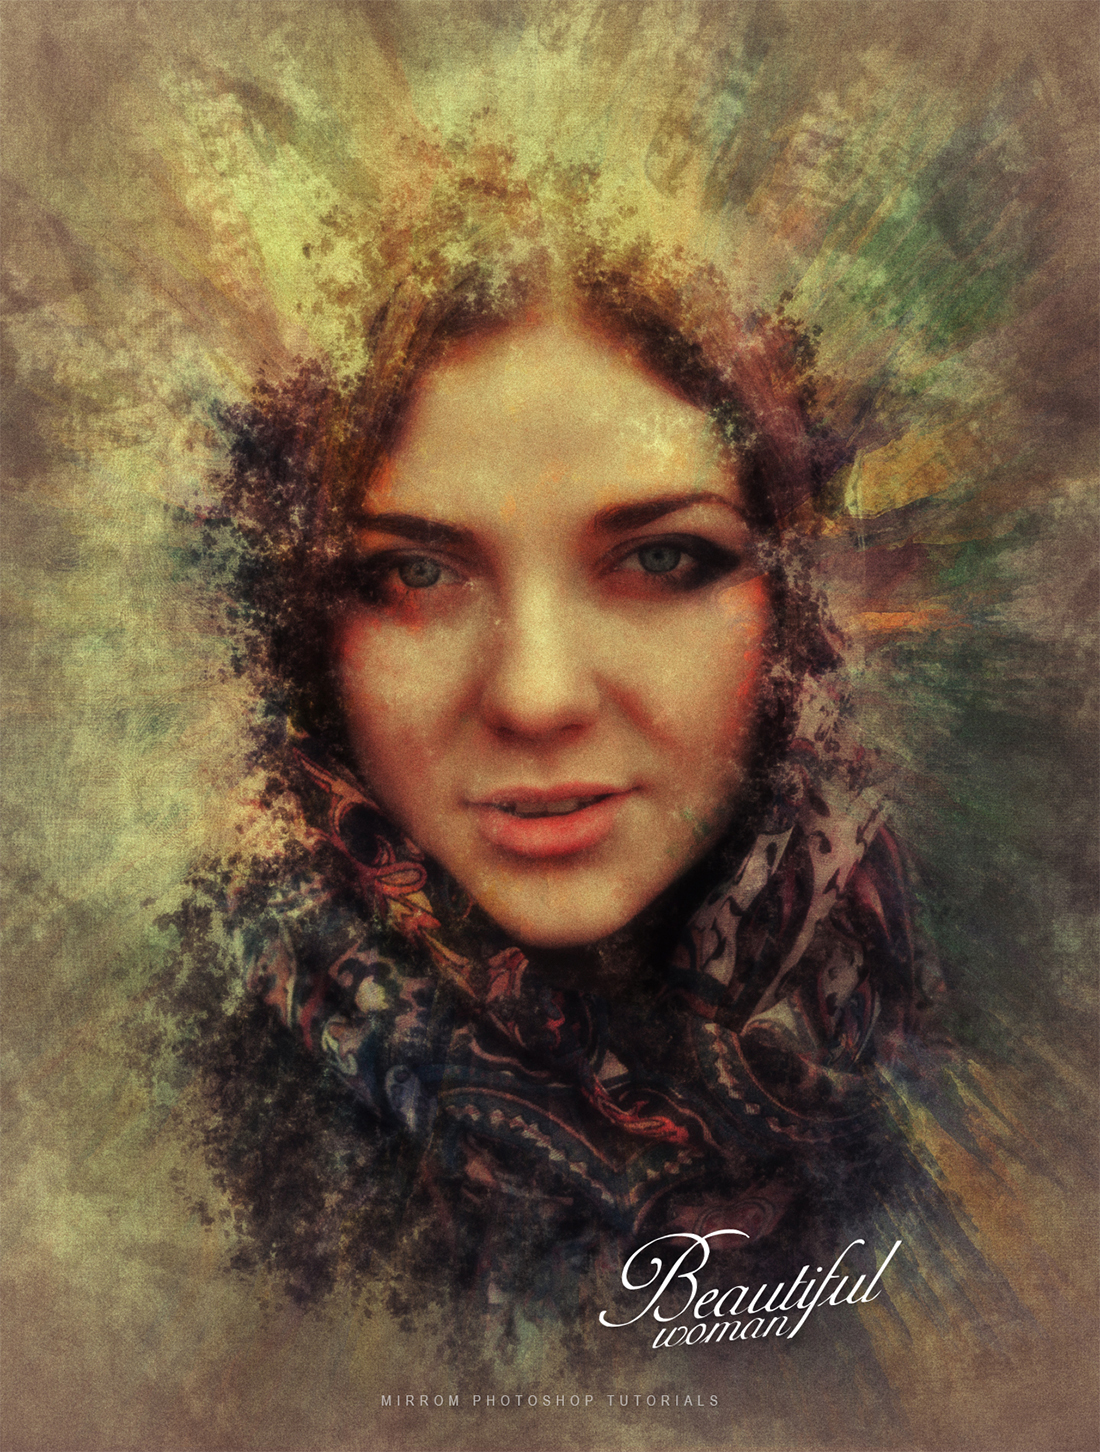 Create a Abstract Vintage Art Poster Design In Photoshop